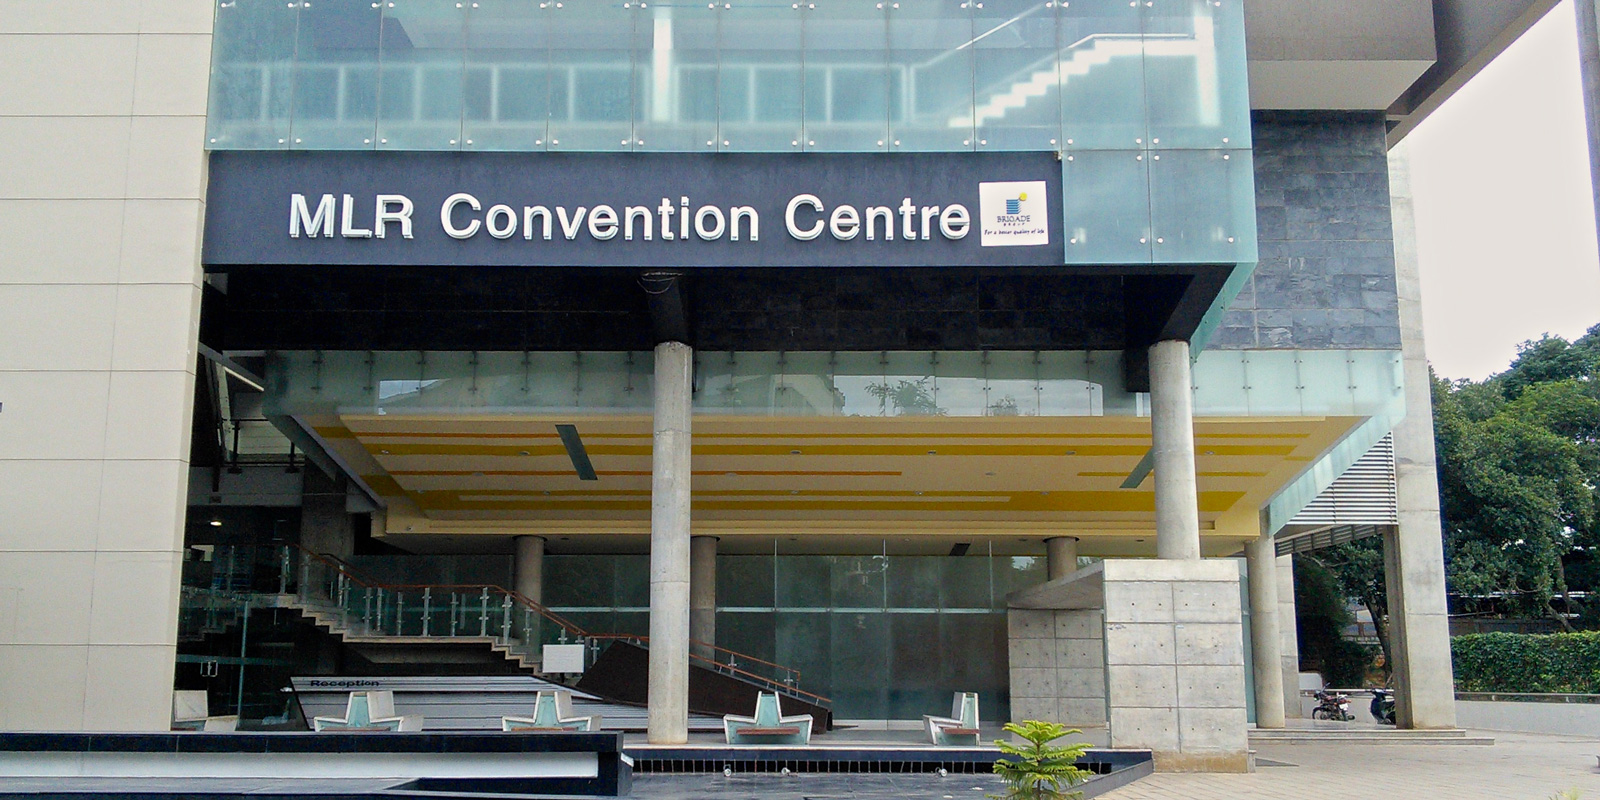 MLR Convention Centre